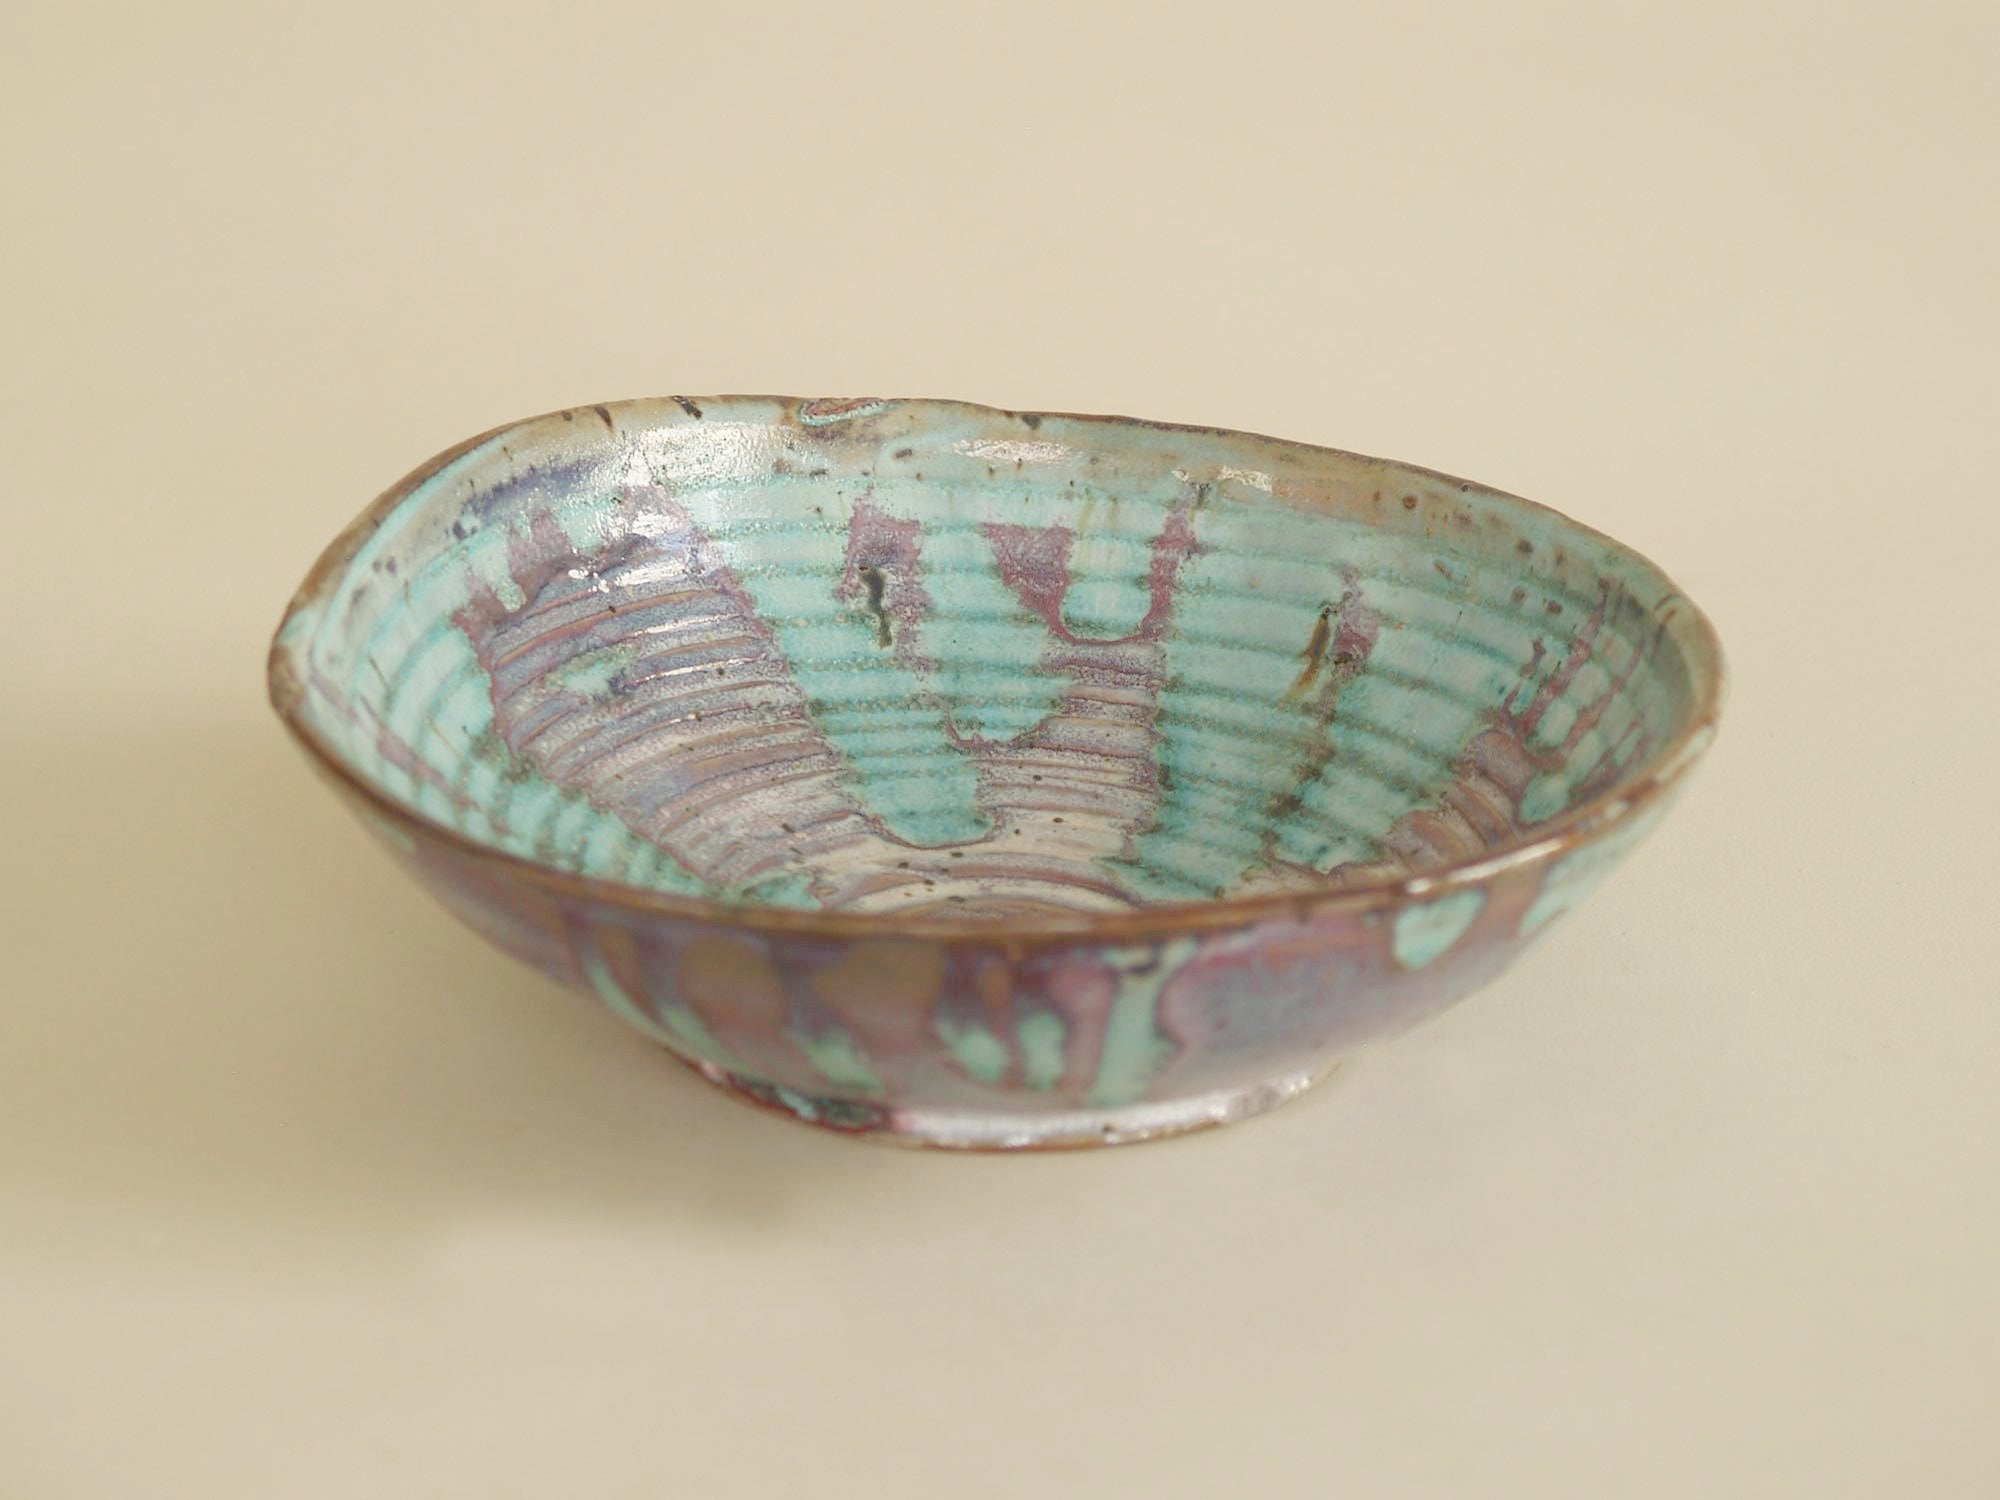 Rare coupe japoniste d'Eugène Lion pour Primavera, France (vers 1915‑20)..Japonisme Bowl by Eugène Lion for Primavera, France (ca. 1915‑20)